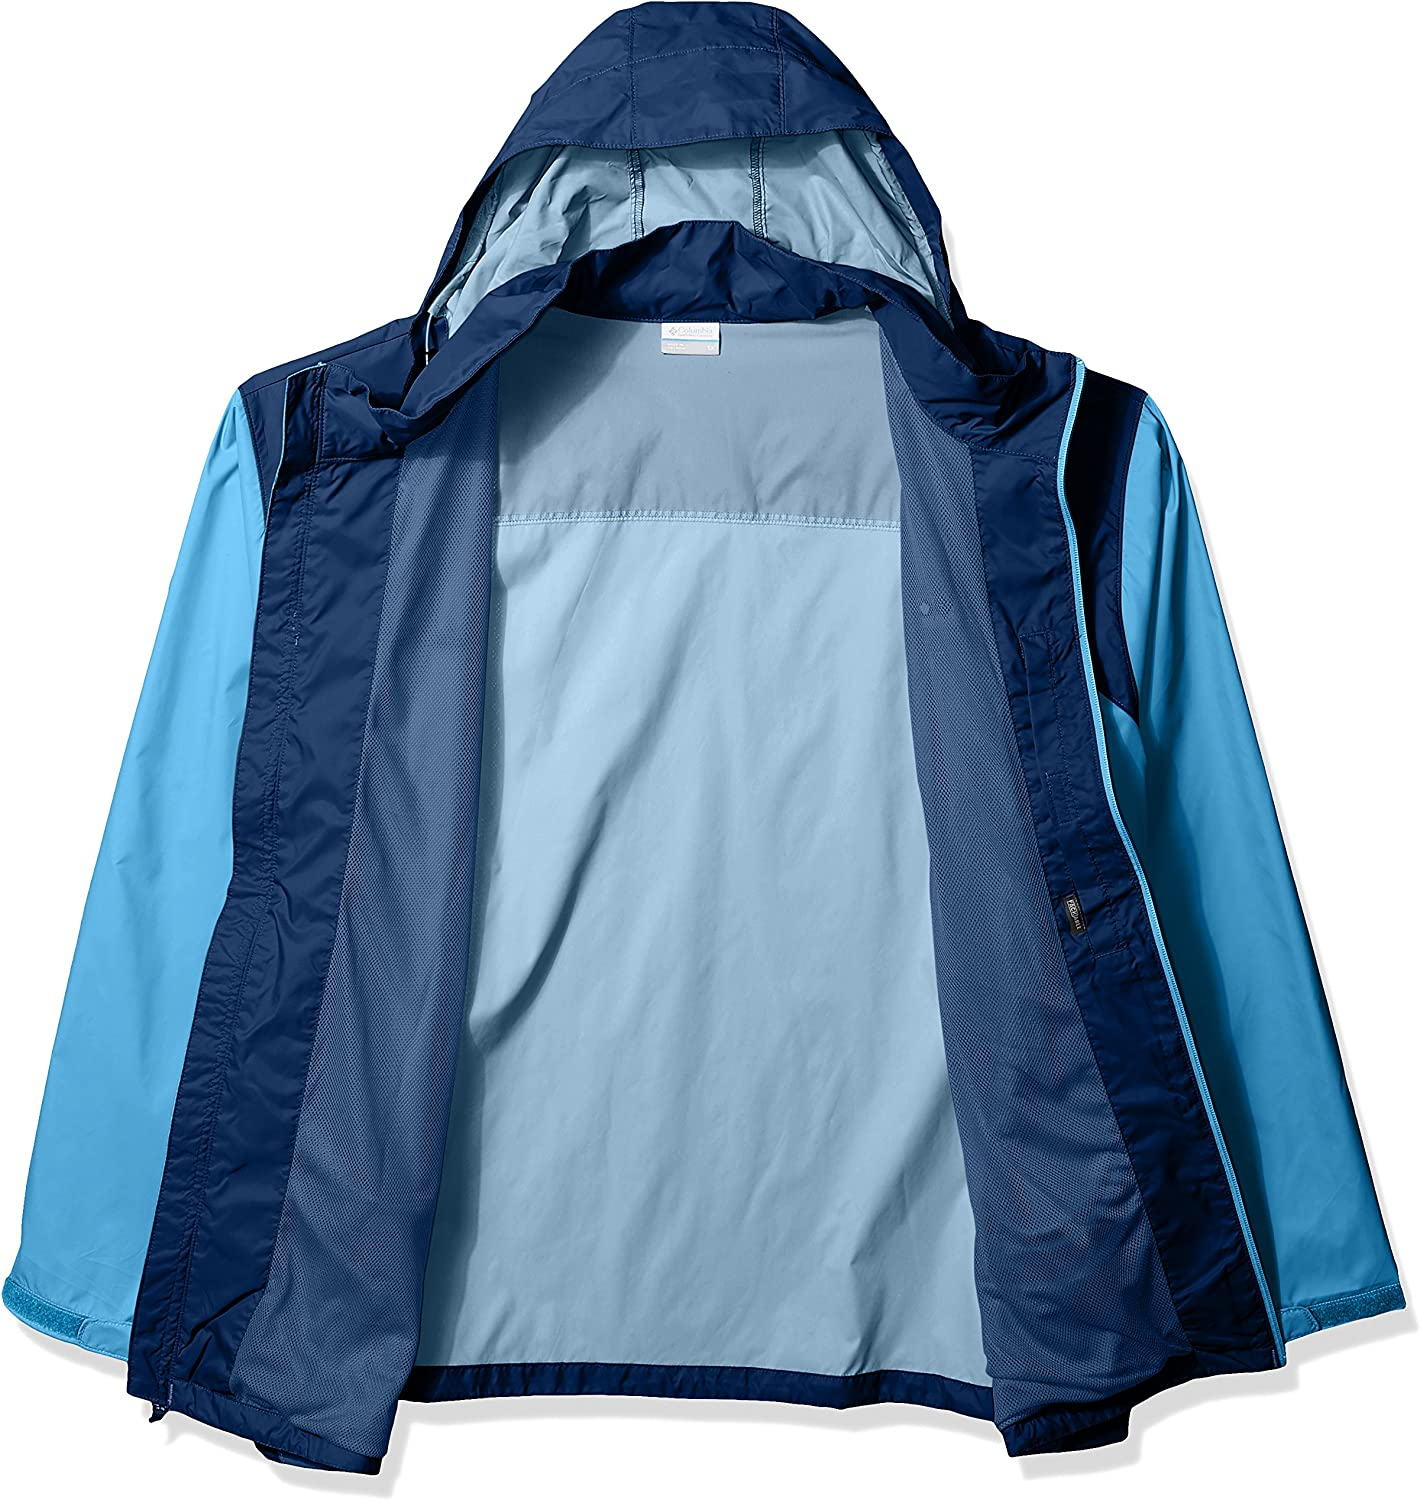 Columbia Big and Tall Glennaker Lake Rain Jacket Blouson de Pluie Homme Yacht/carbone.